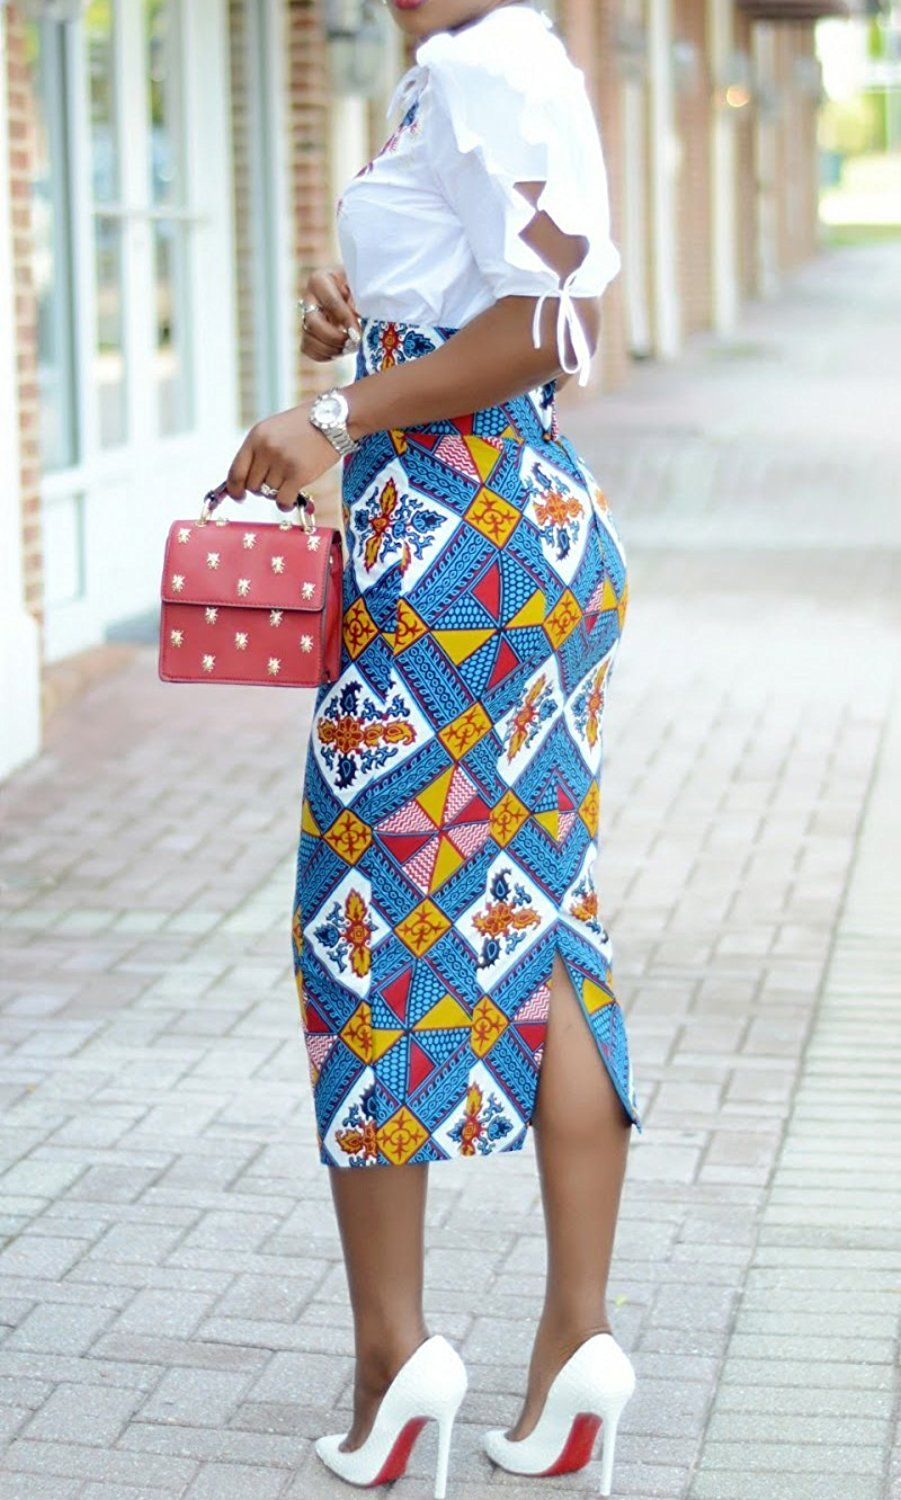 7a0db492b2 Ermonn Women African Print Knee Length Skirt Slim Fit Midi Pencil Skirt at Amazon  Women's Clothing store: